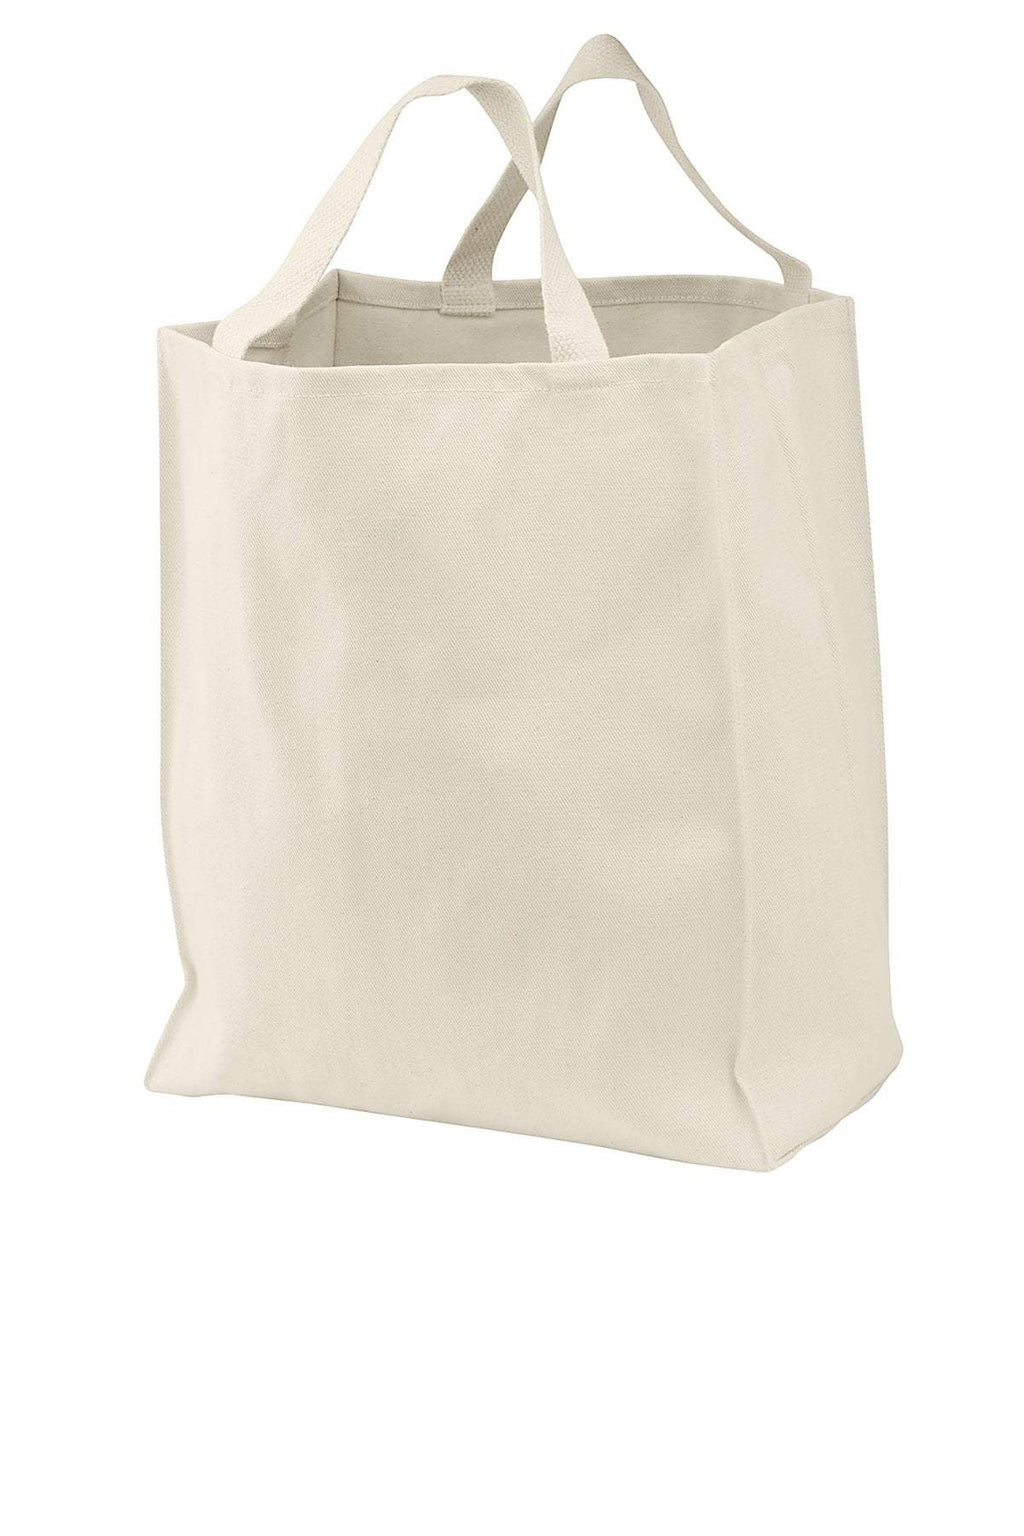 BAGANDTOTE COTTON TOTE BAG NATURAL Grocery Cotton Tote Bag